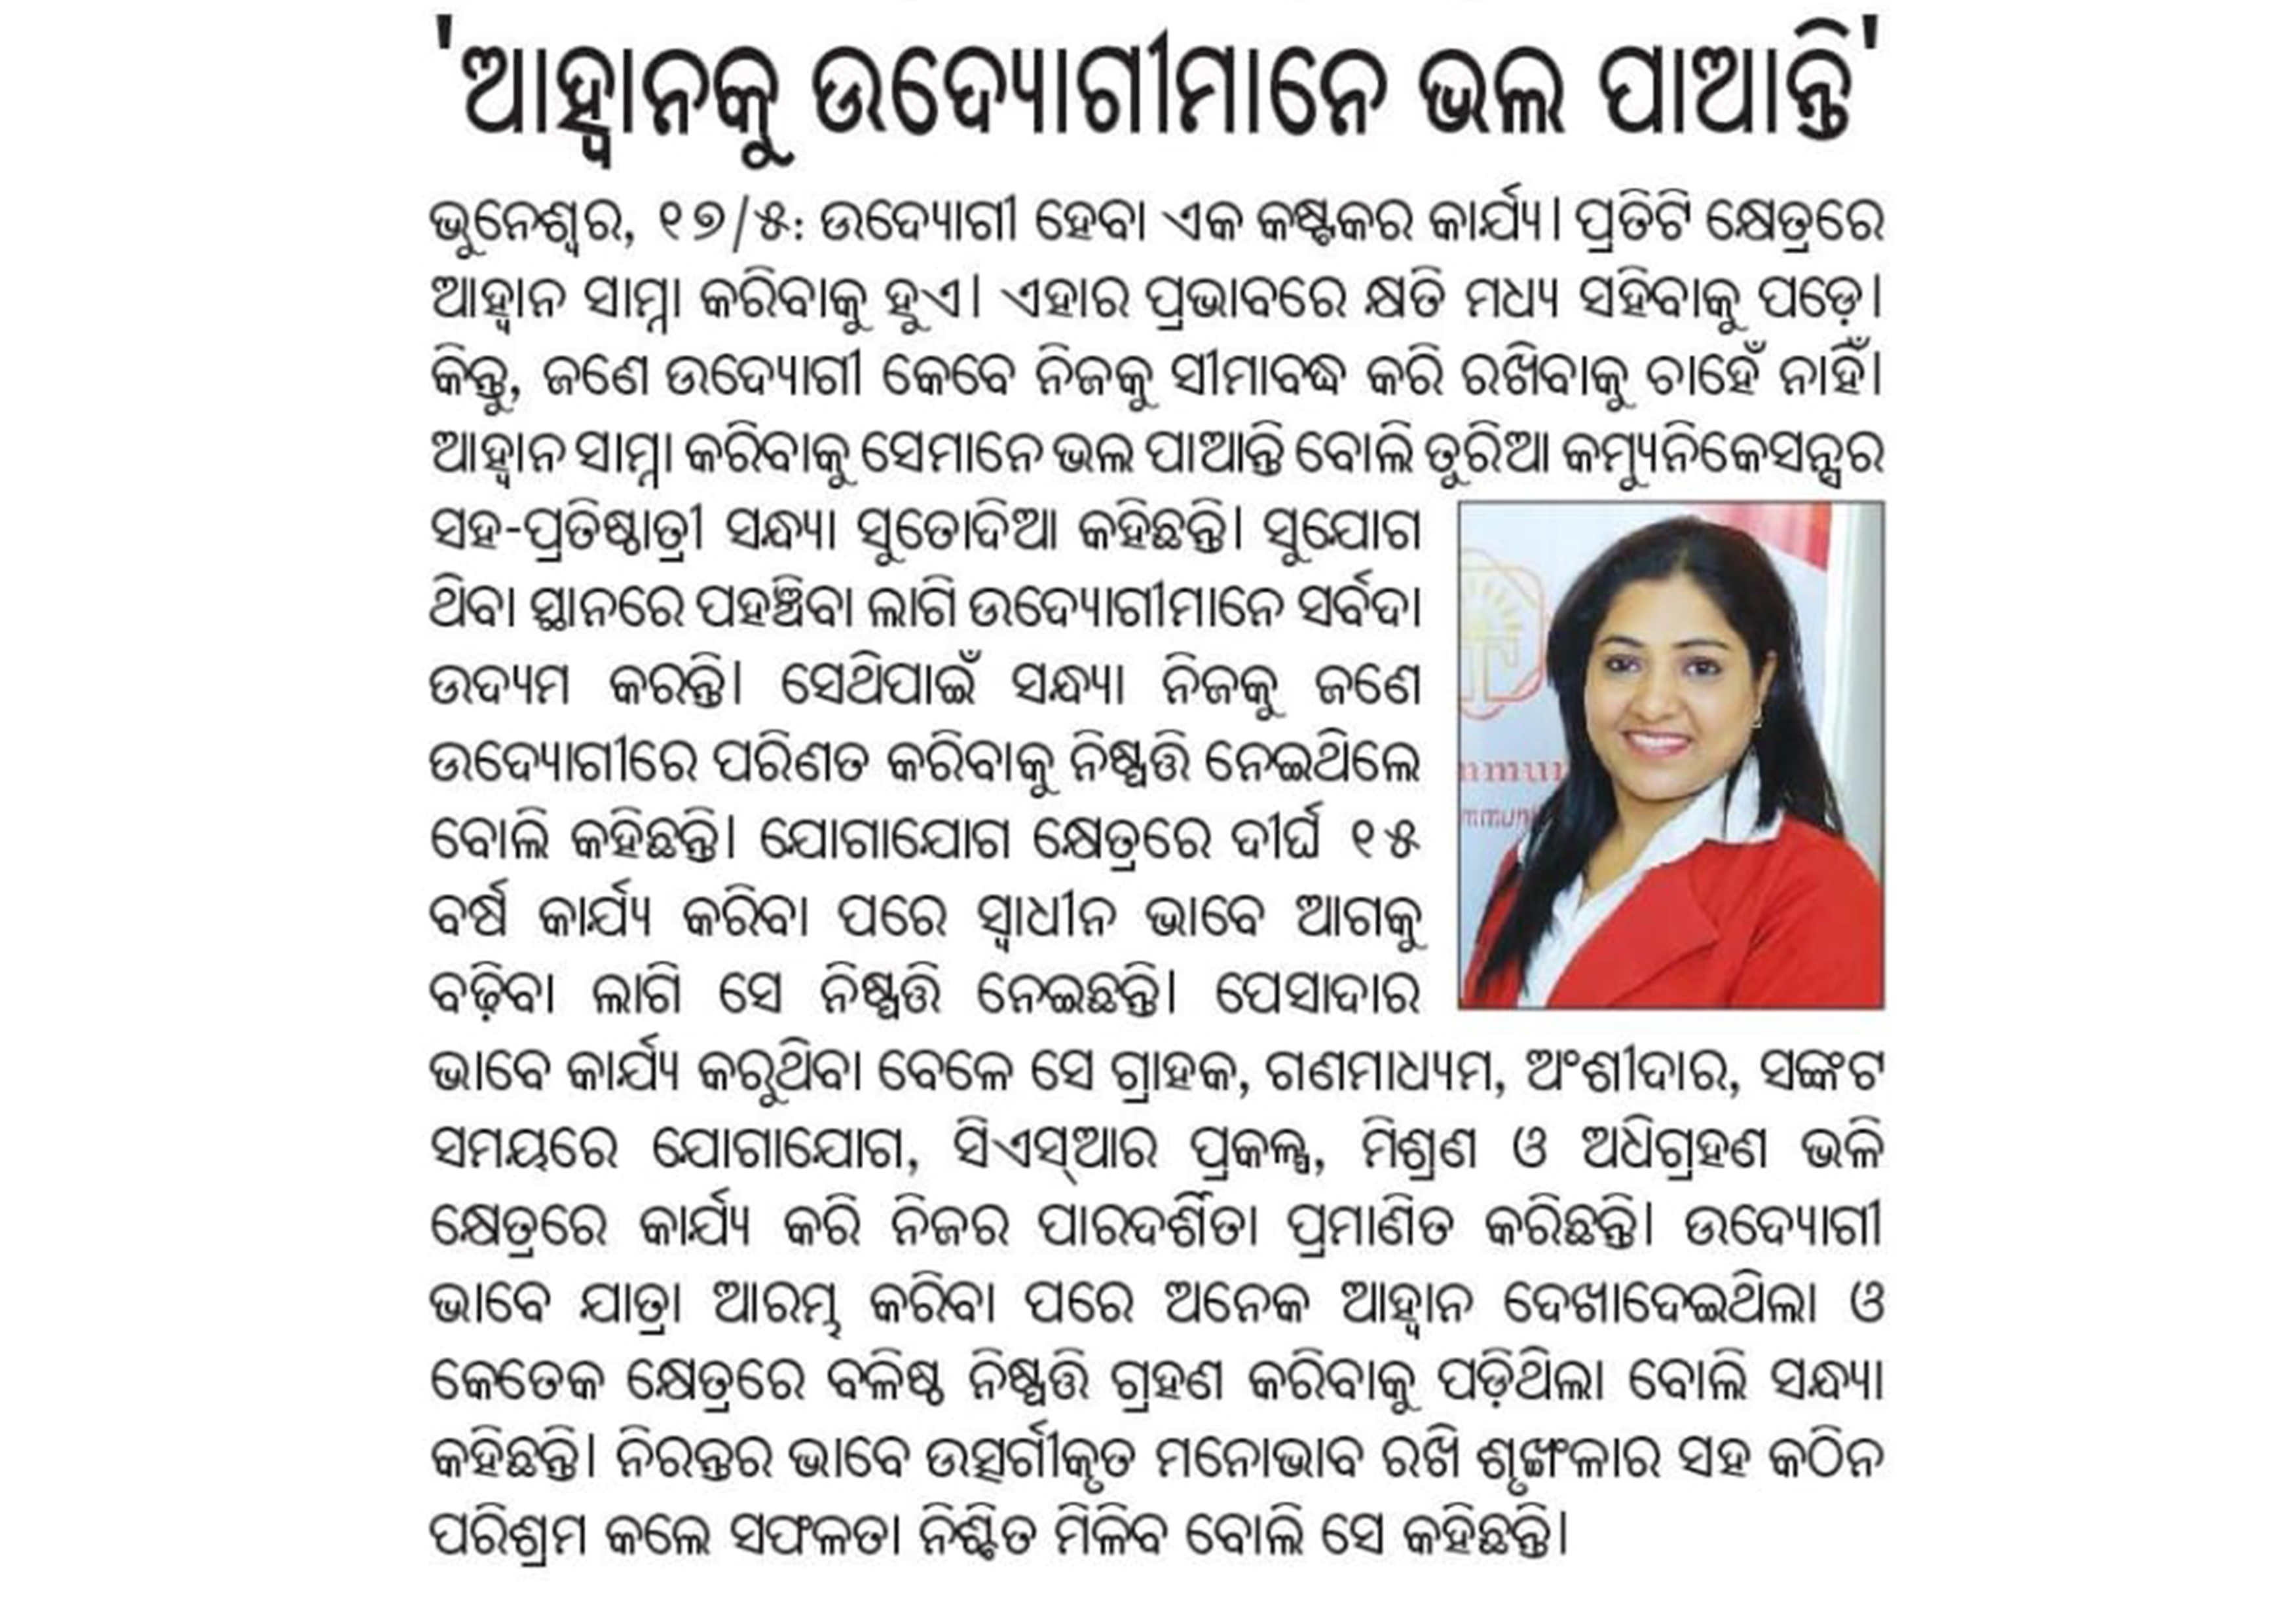 Coverage of Sandhya Sutodia, Co-Founder's article